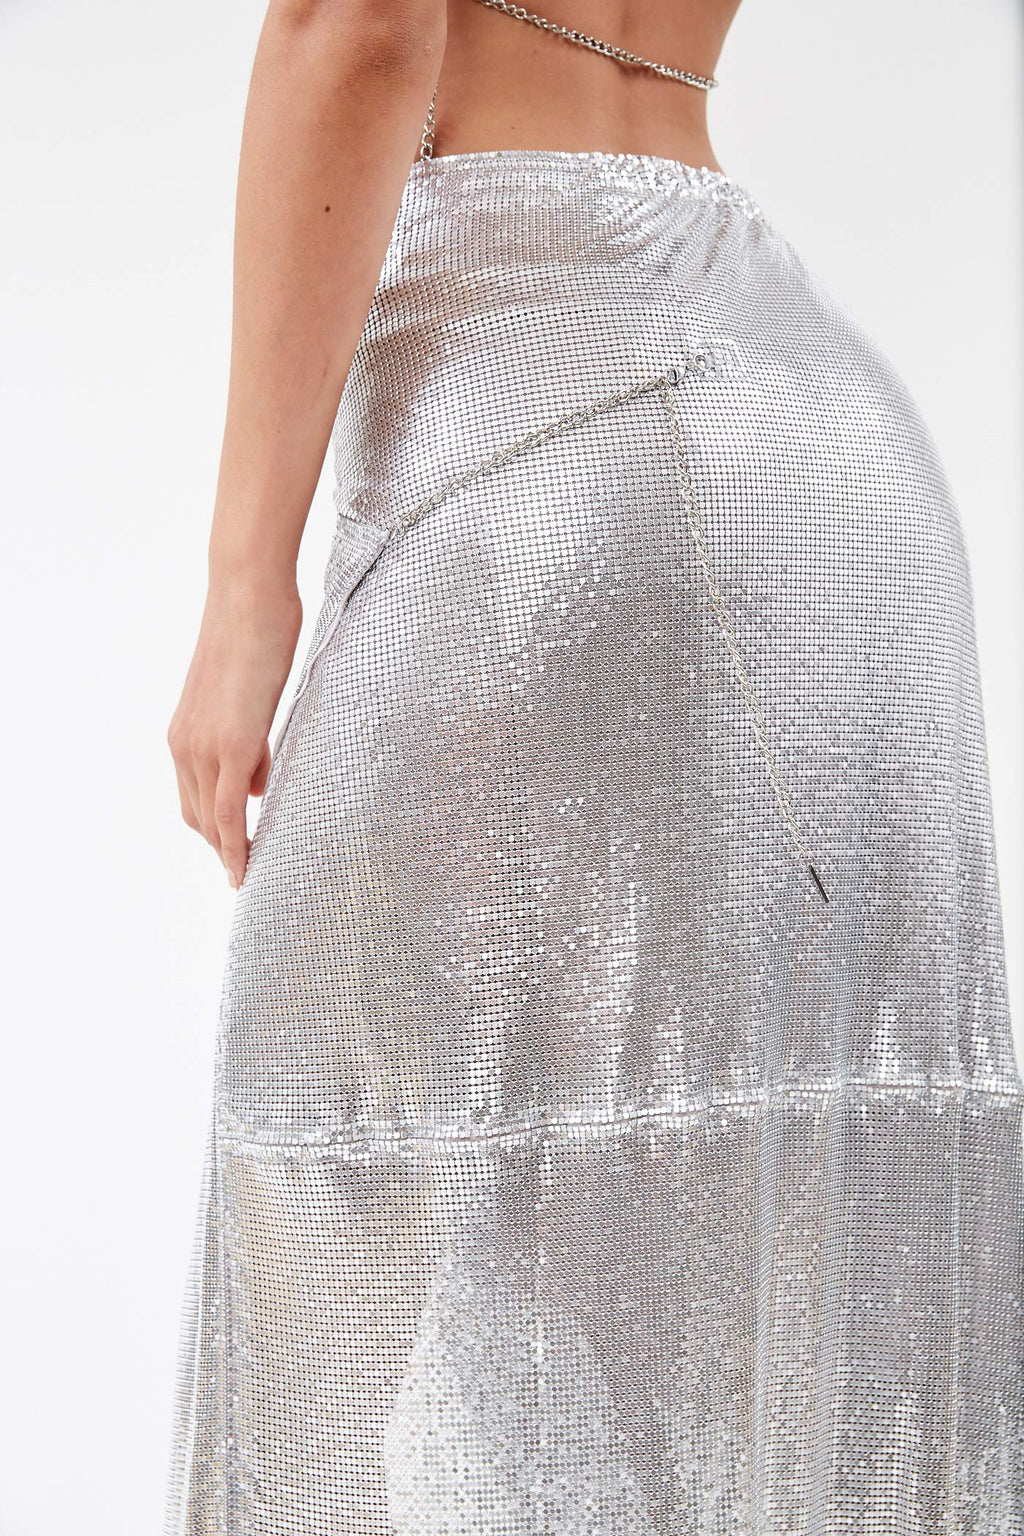 Pamela Chrome Skirt